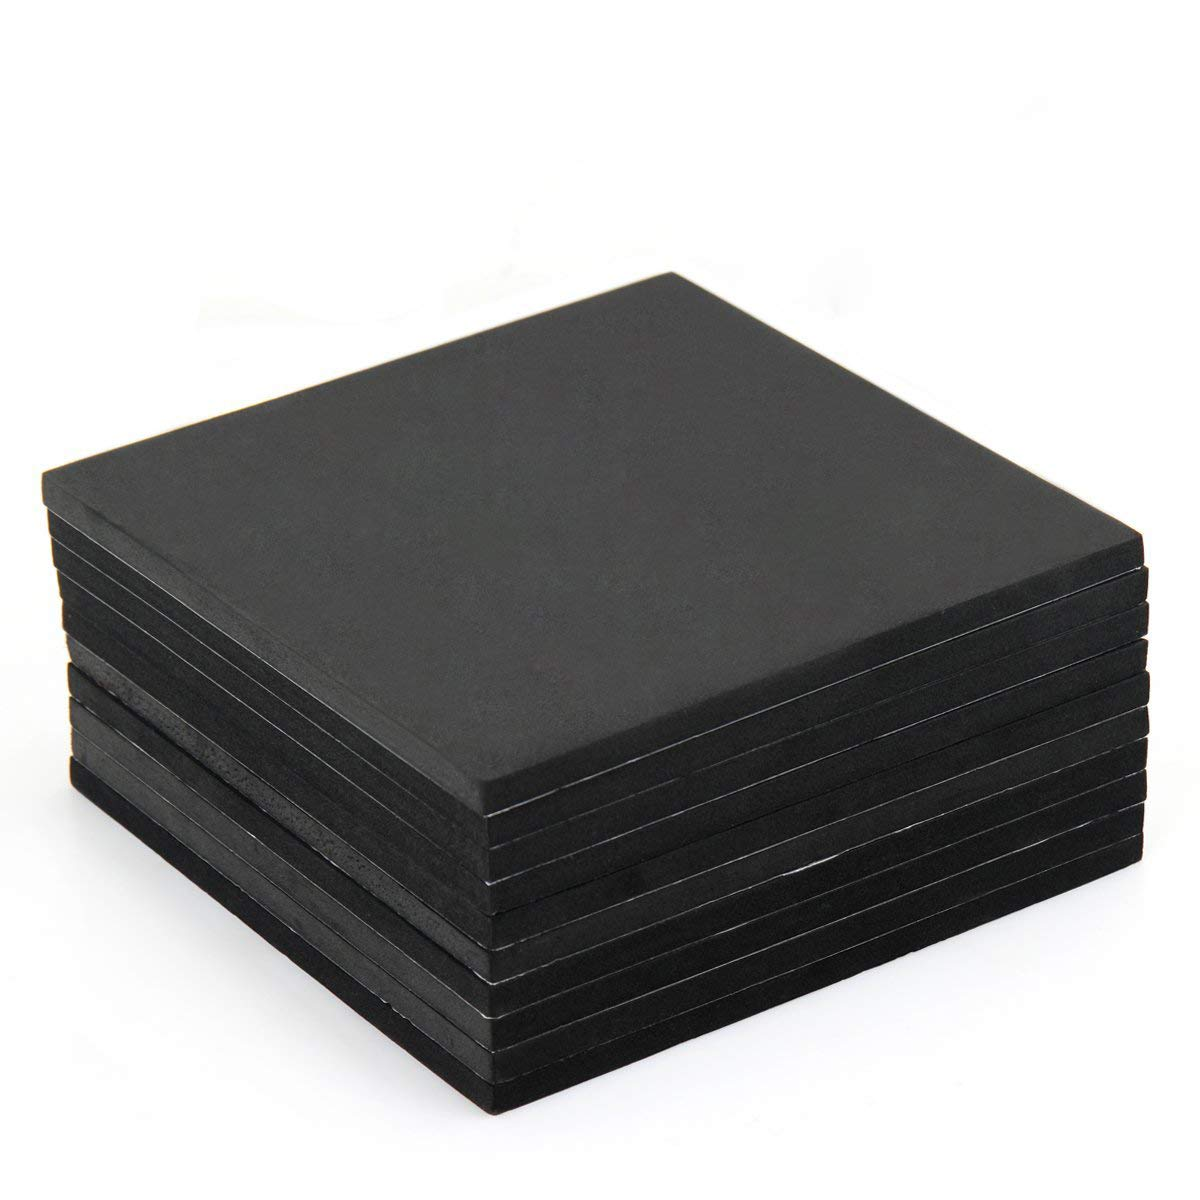 10-Piece Neoprene Sponge Foam Rubber Sheet & Pad with Adhesive By AUSPA 7 in x 7 in x 1/3'' Thick (#5)